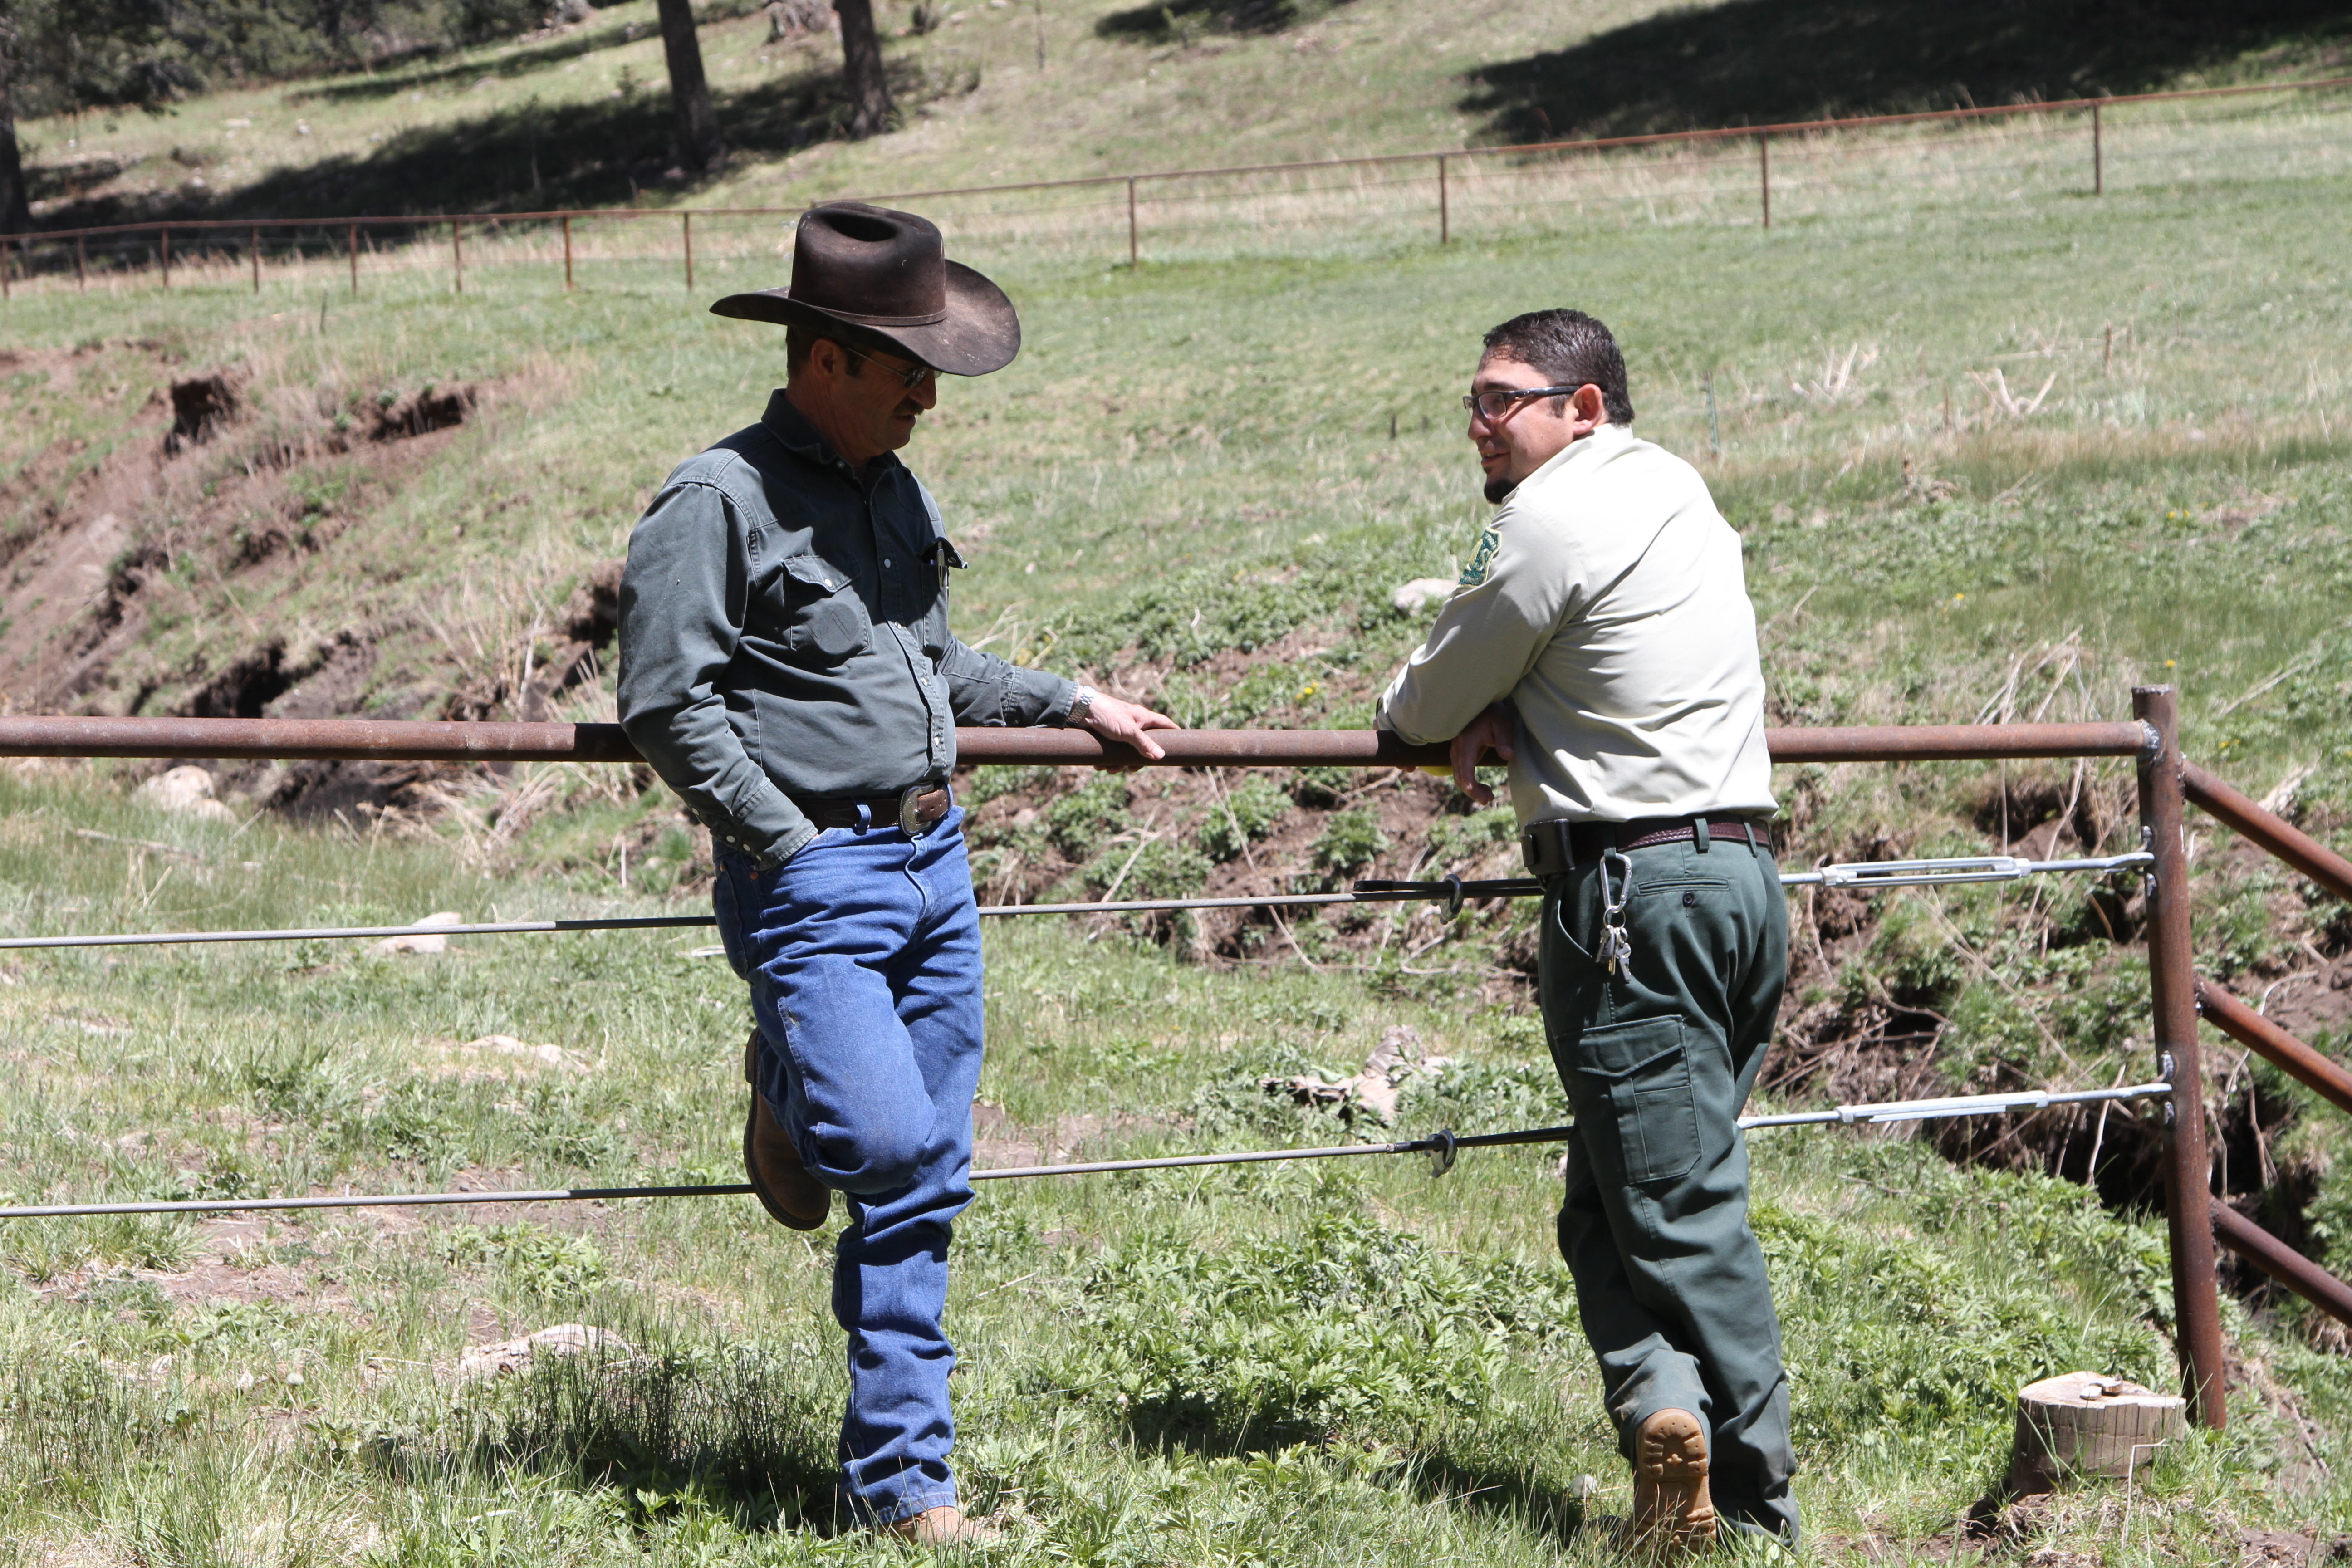 Rural New Mexico county fights feds over water rights